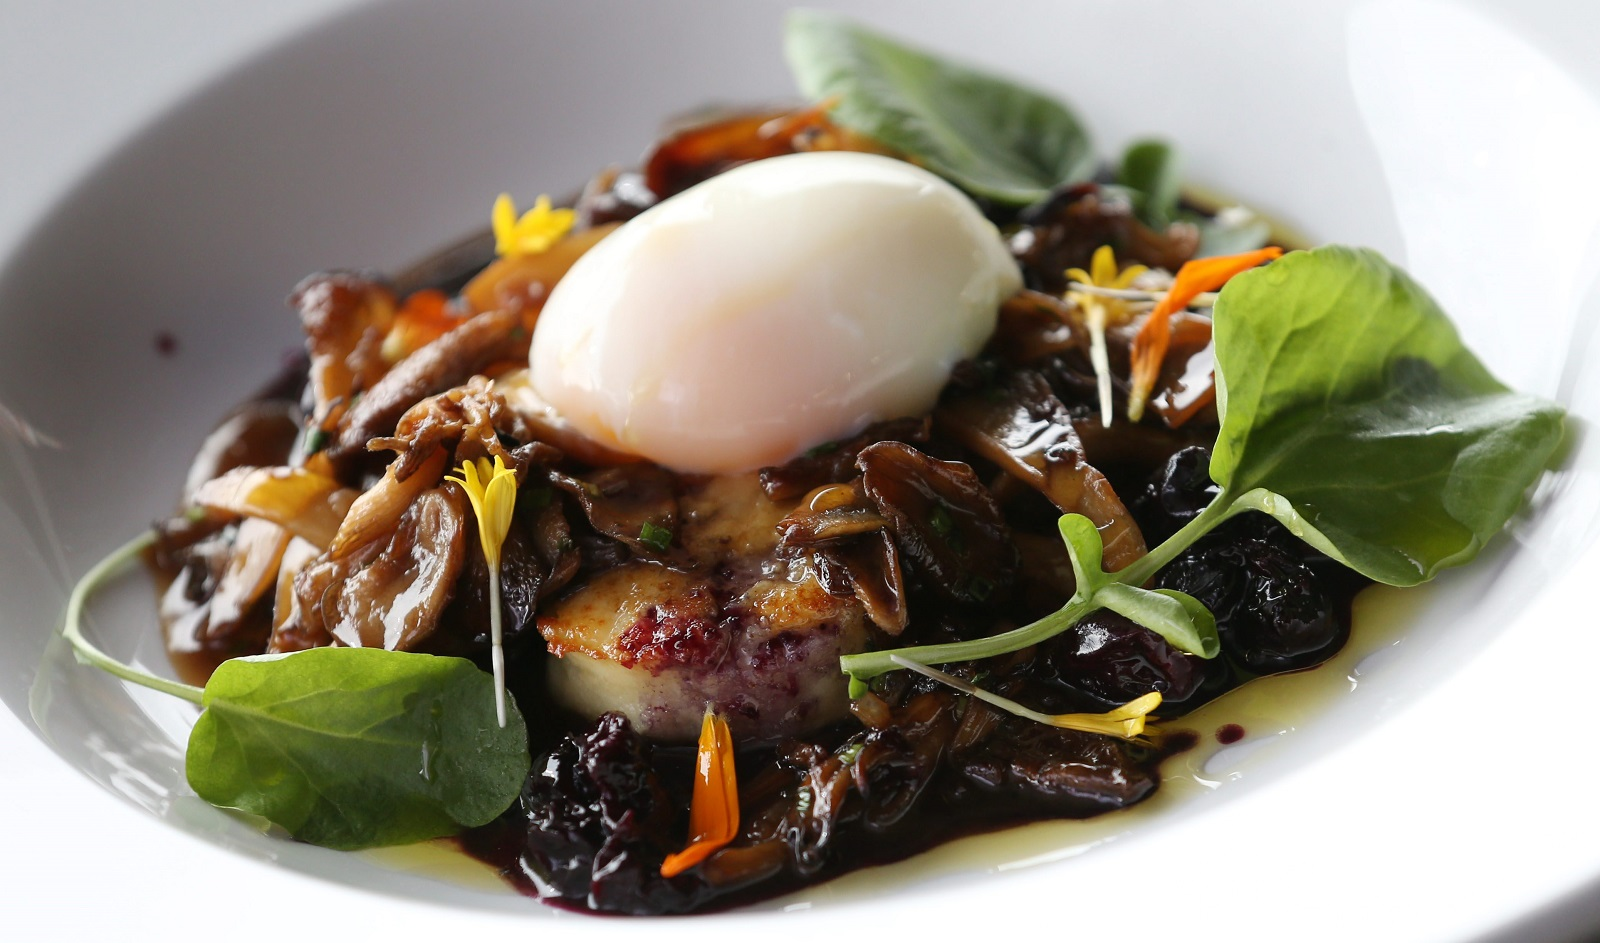 The Roman gnocchi comes with braised mushrooms, pork belly, 45-minute egg and blueberries. (Sharon Cantillon/Buffalo News)